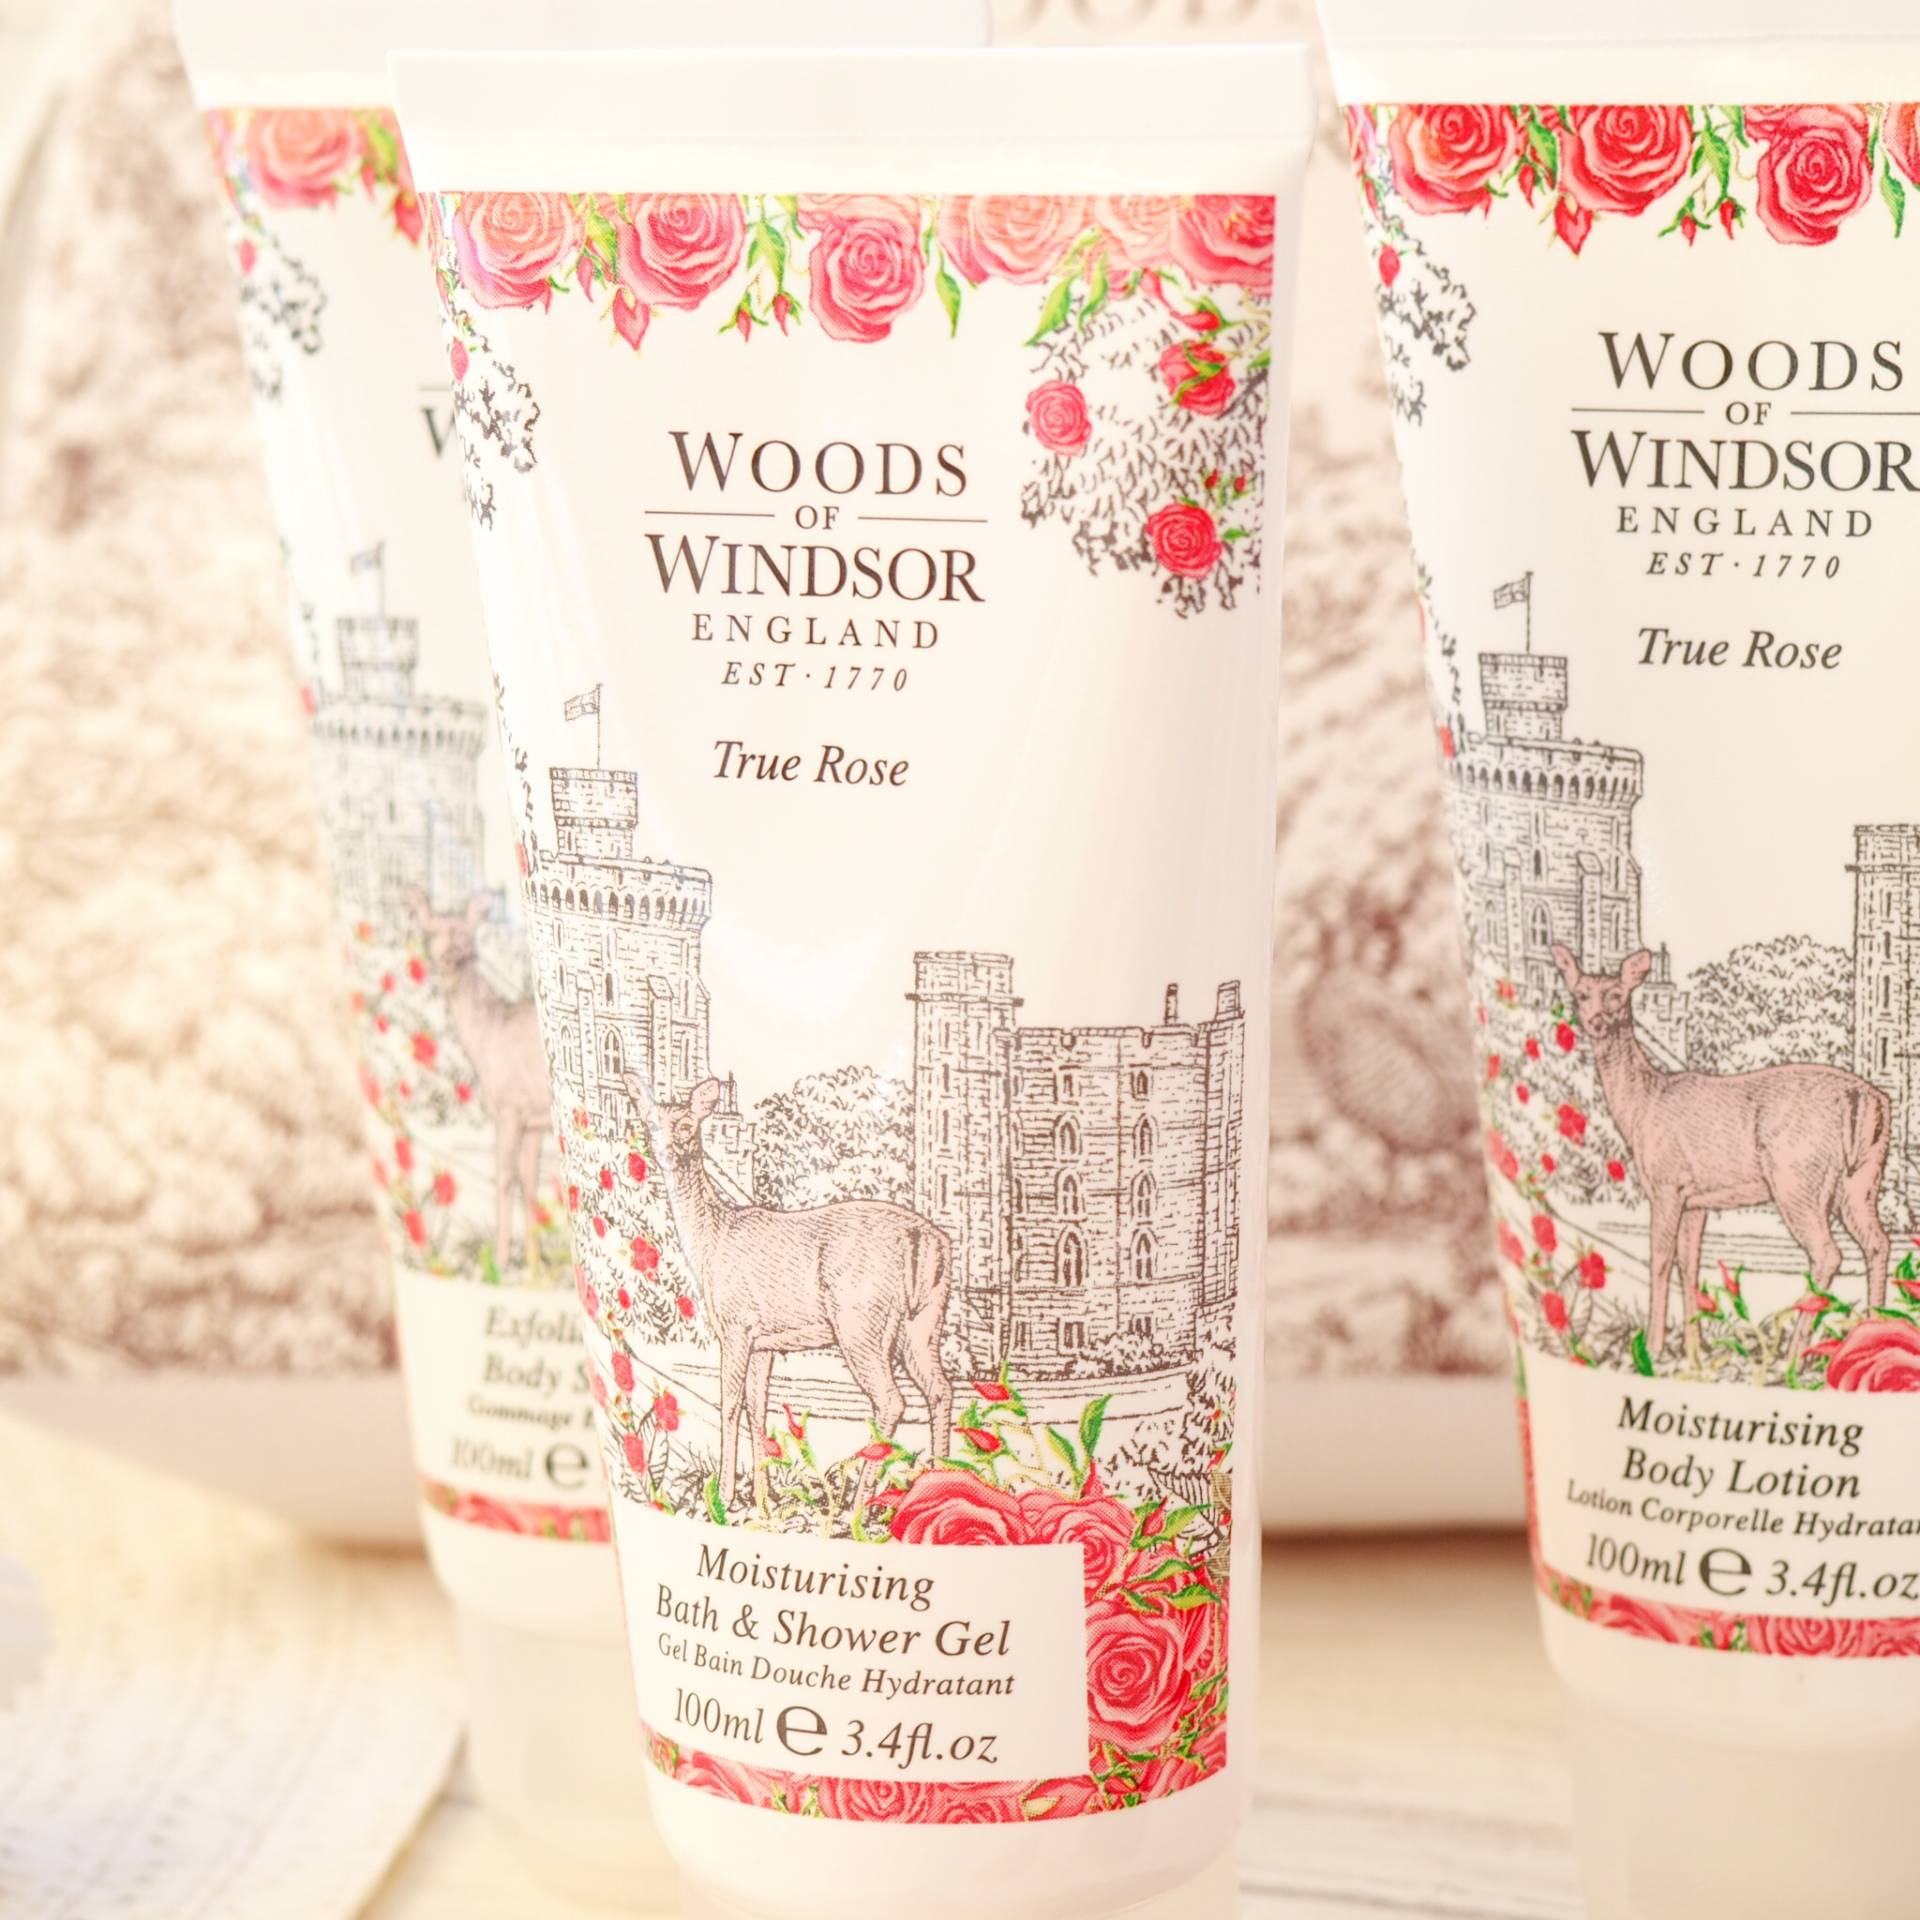 A Taste of Windsor with Woods of Windsor